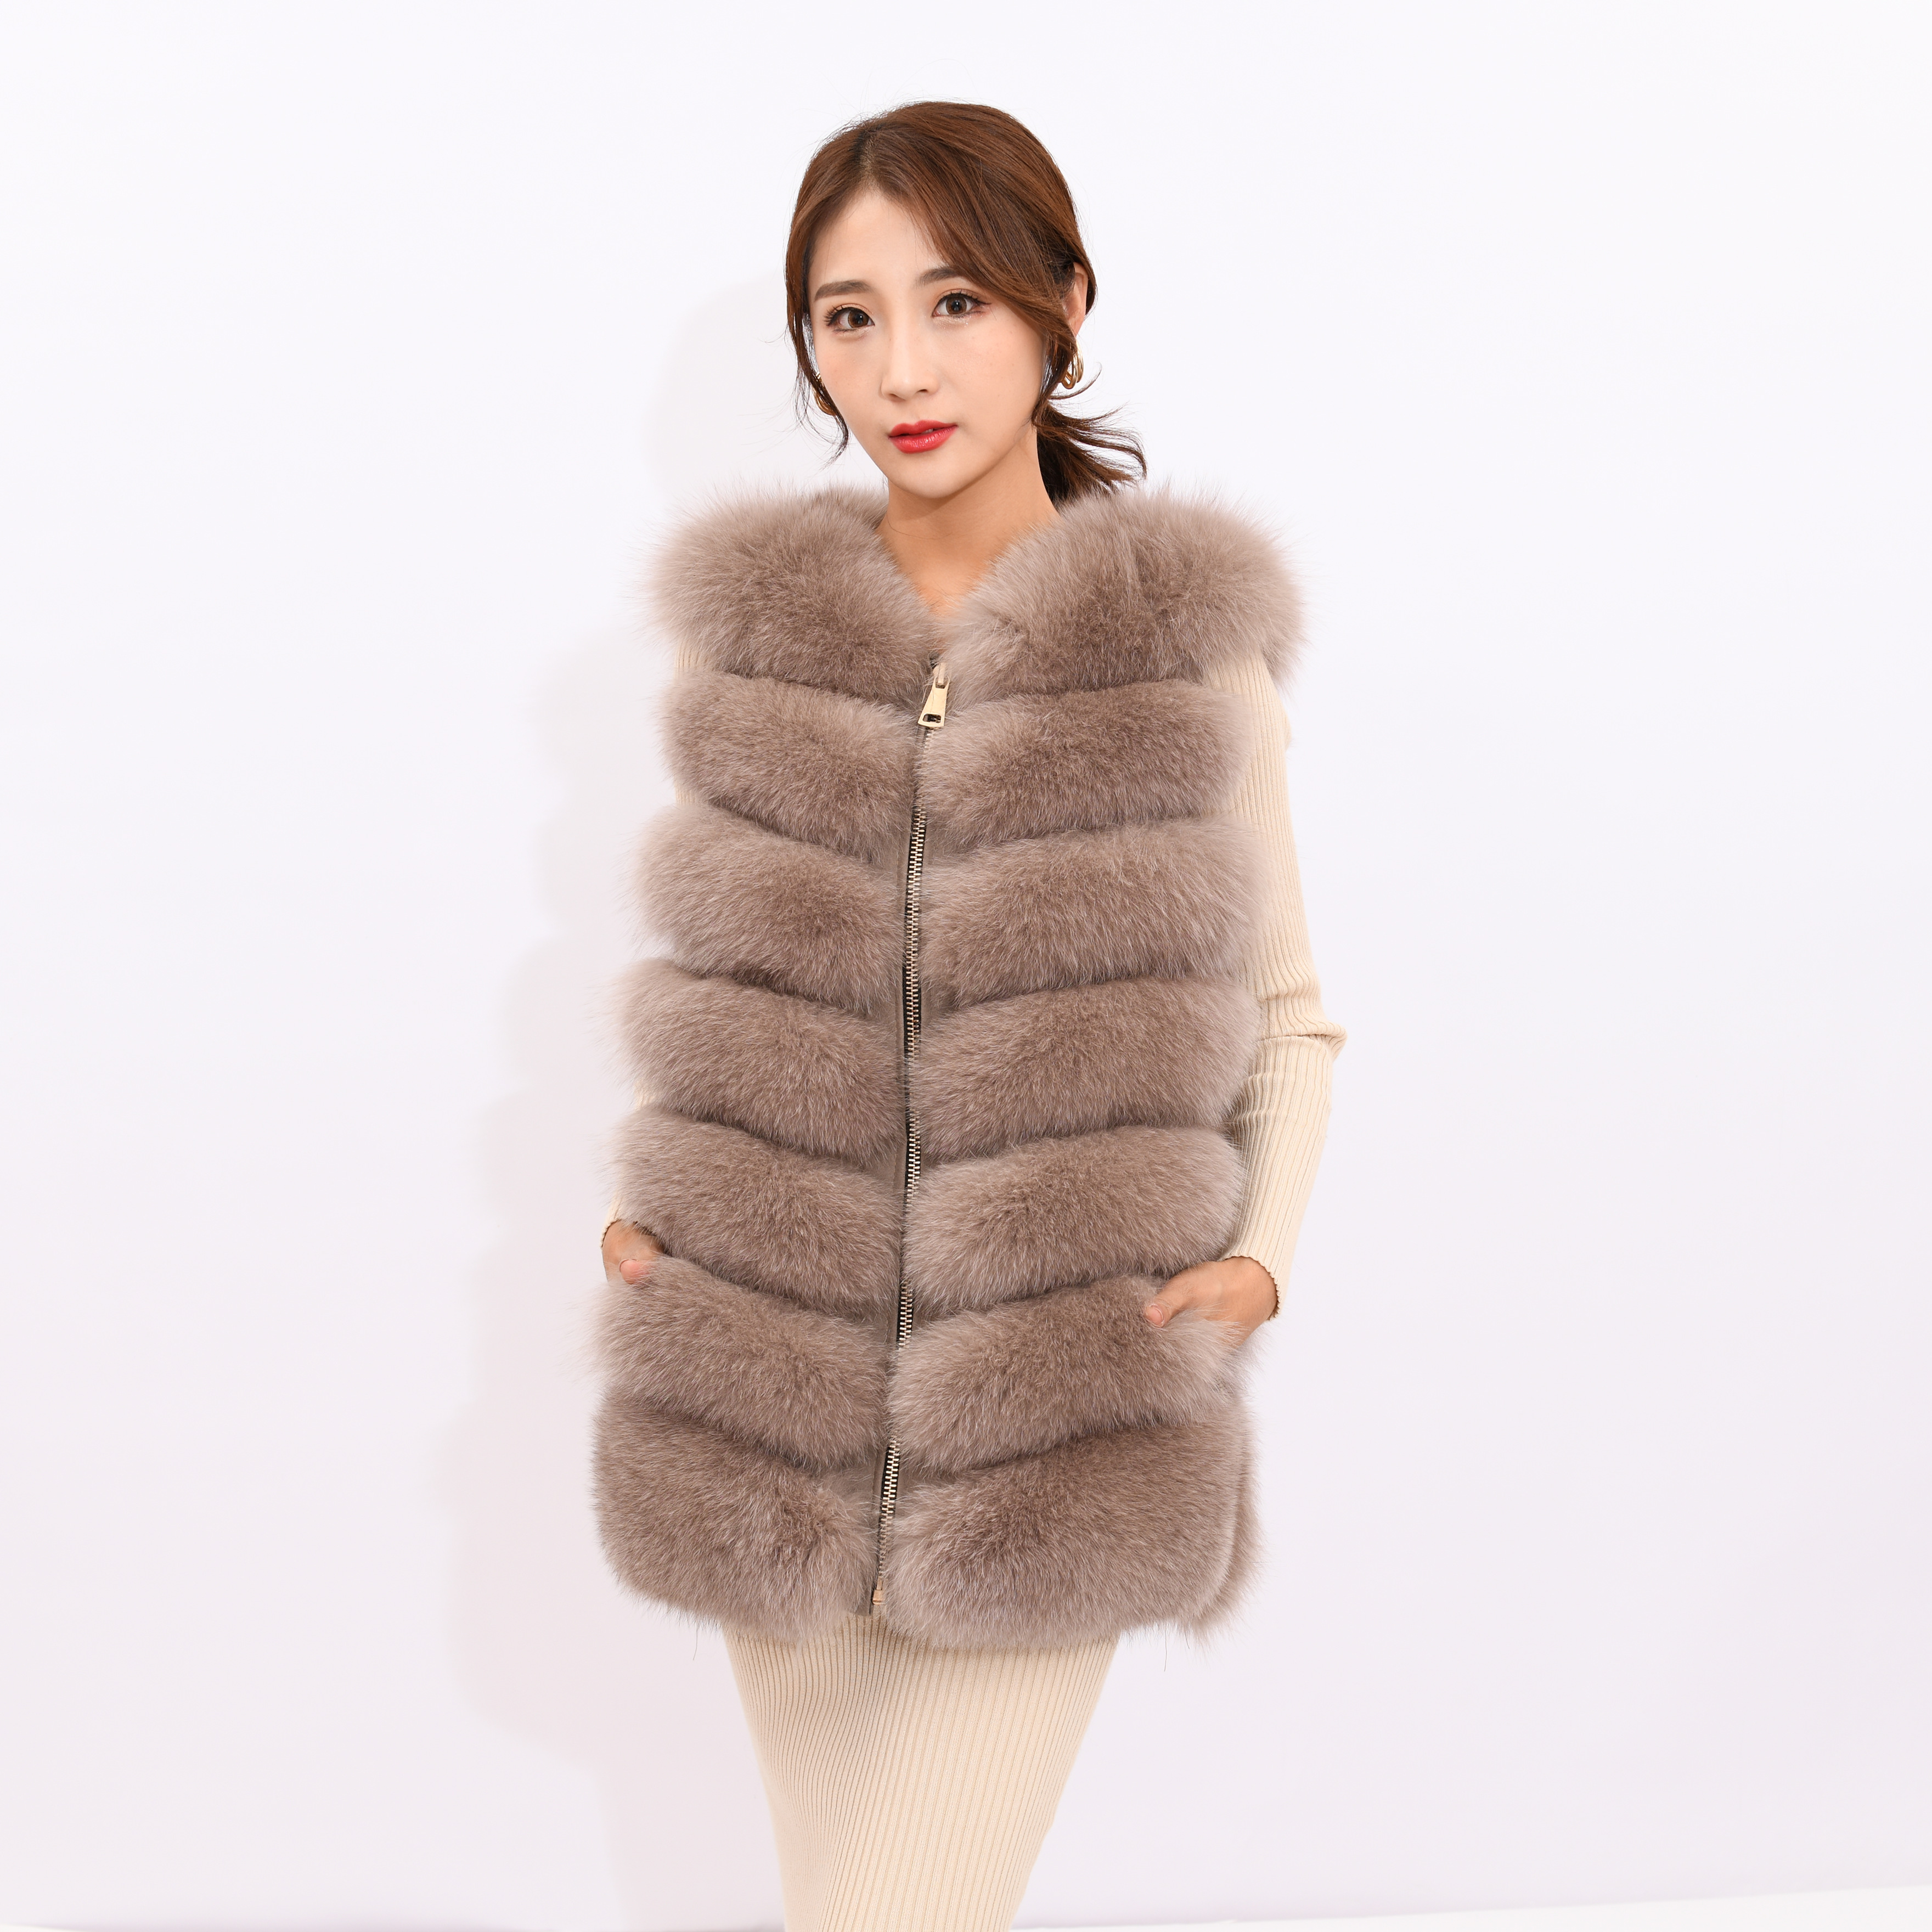 Image 4 - 2019 new women's winter real fox fur vest, real fox fur jacket, 100% natural real fur coat, high quality stylish warm sleeveless-in Real Fur from Women's Clothing